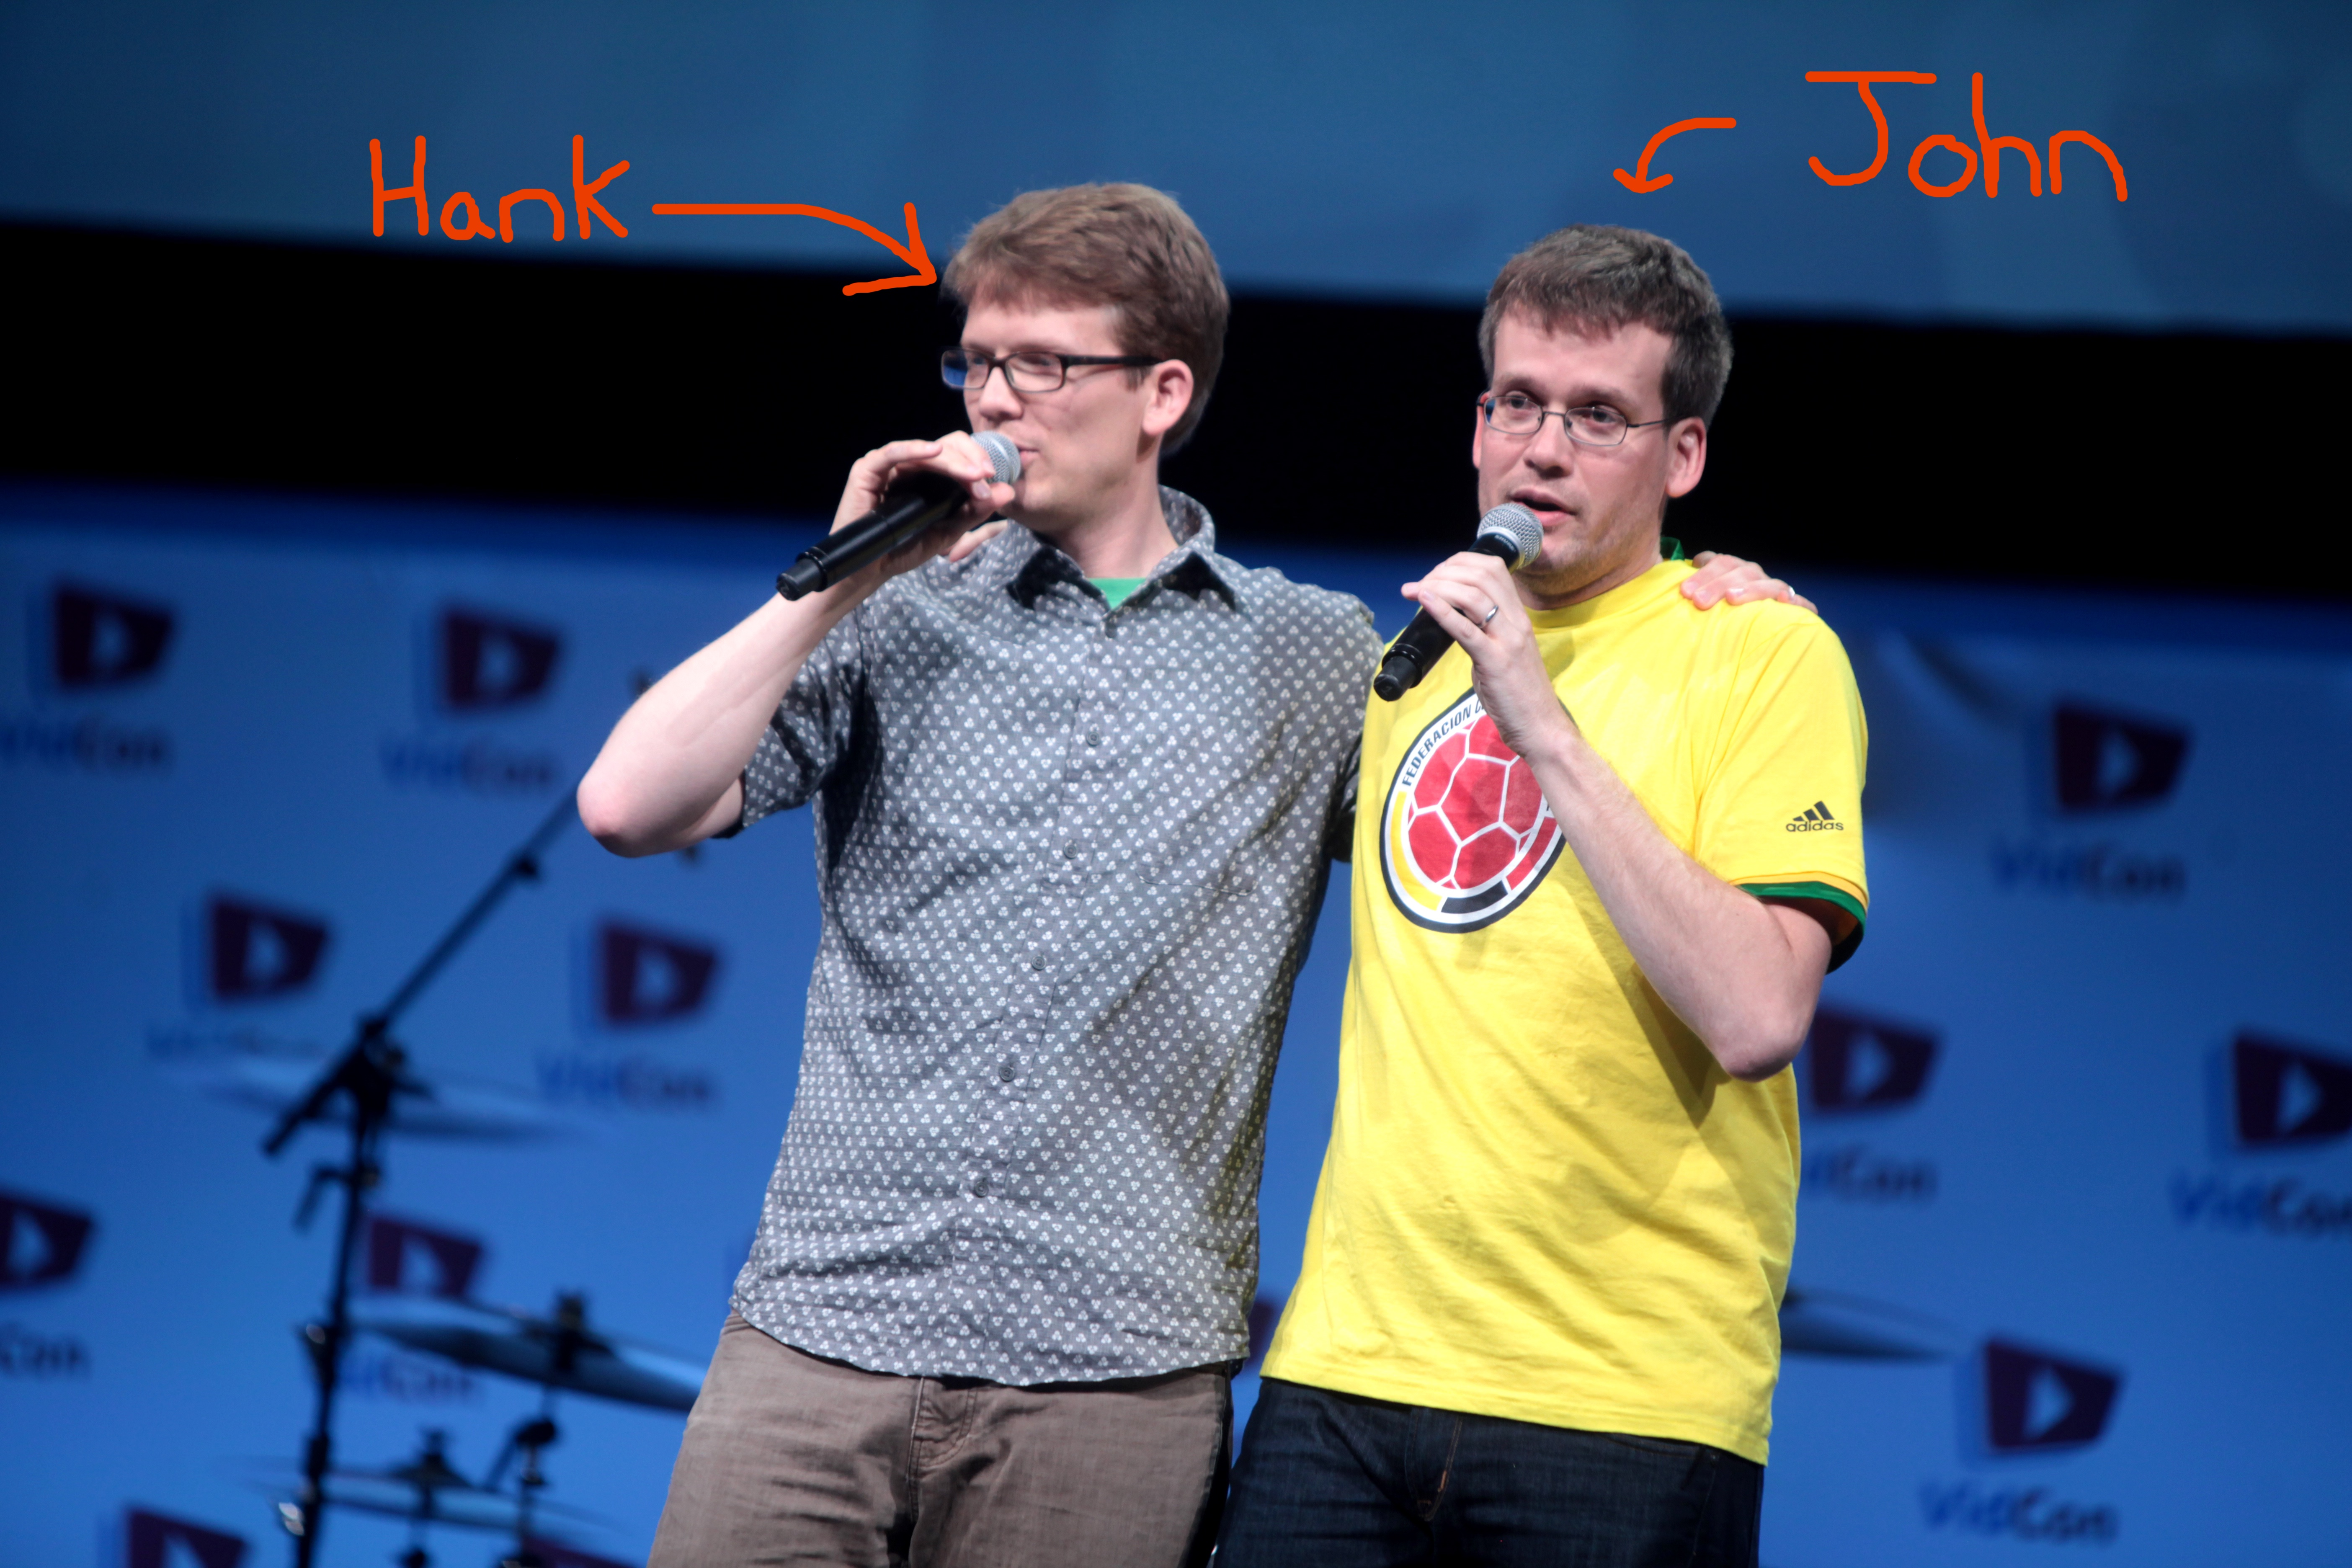 A Crash Course on the Learning Empire of John and Hank Green - Hurt ...